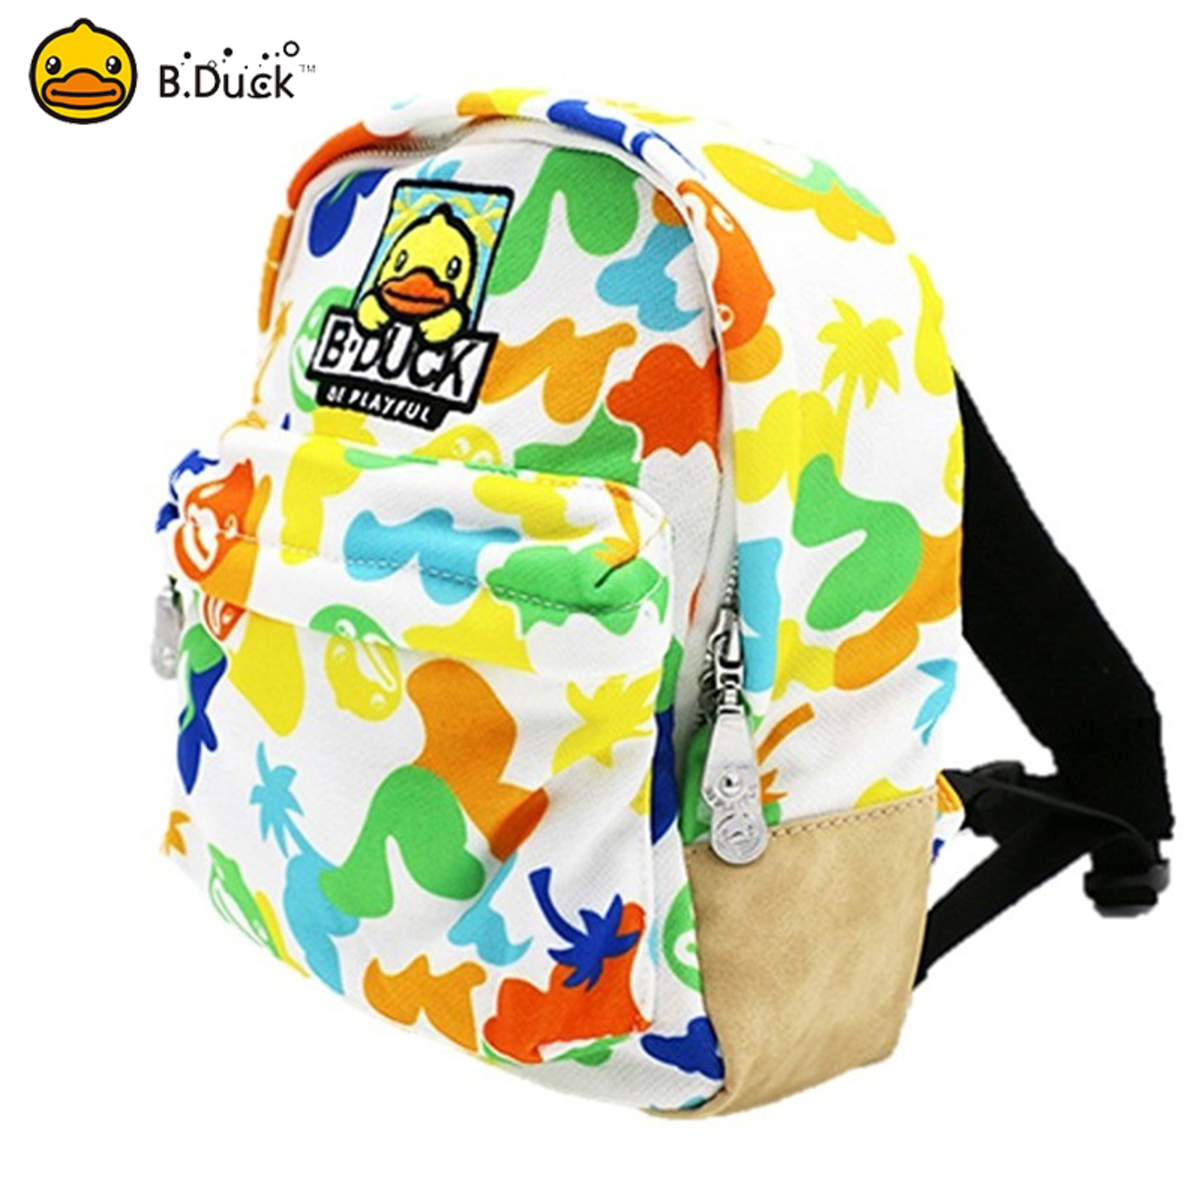 B.Duck Iconic Kids Backpack